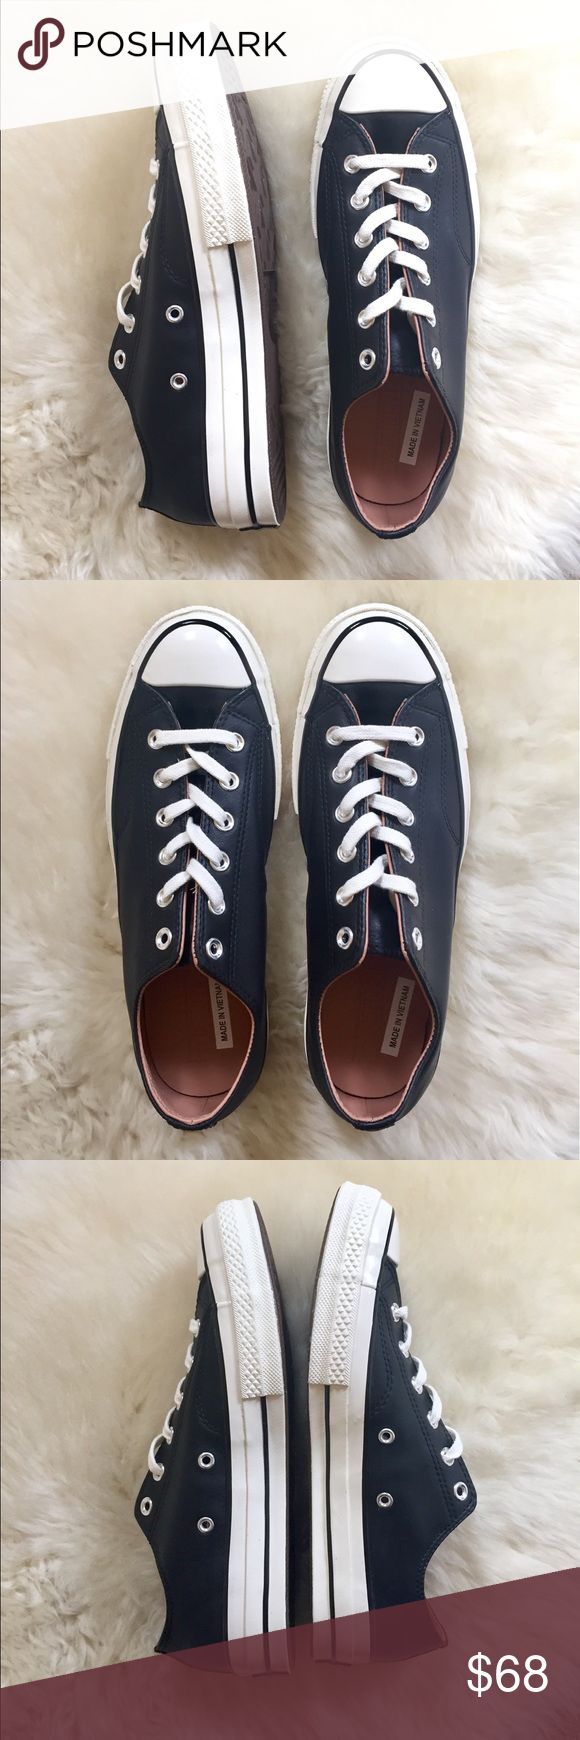 Converse Chuck Taylor Leather Low Top Sneaker New In Box - Black Chuck Taylor Leather '70 Oxford Converse low top sneaker. Unisex - Women's size 10 or Men's Size 8. Converse Shoes Sneakers